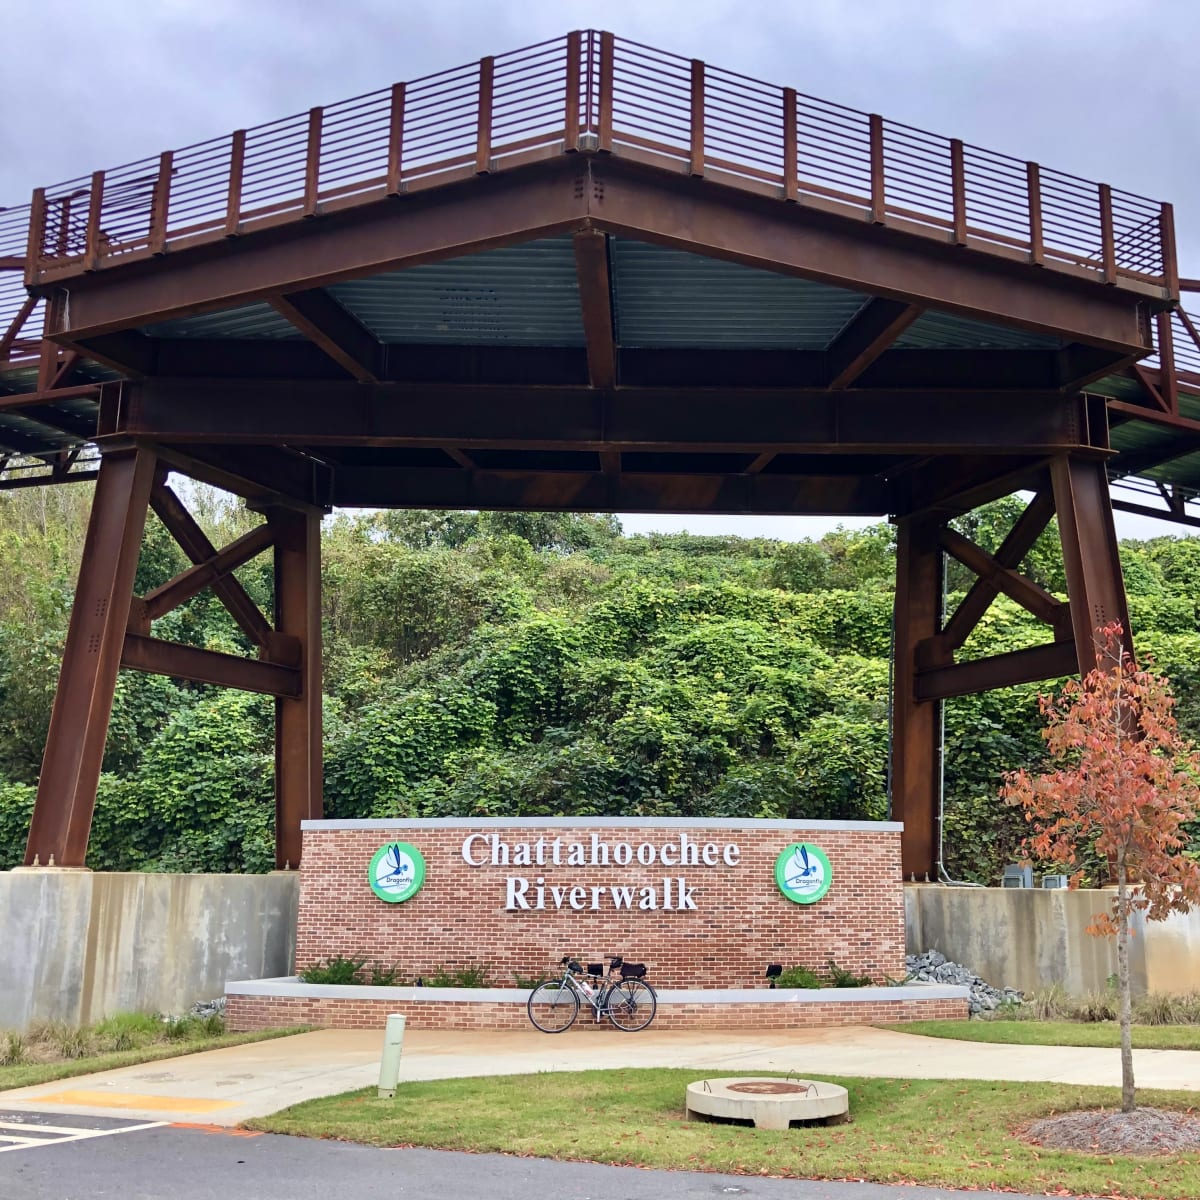 """A photo of my bicycle in front of a sign for """"Chattahoochee Riverwalk"""" and under a pedestrian bridge."""